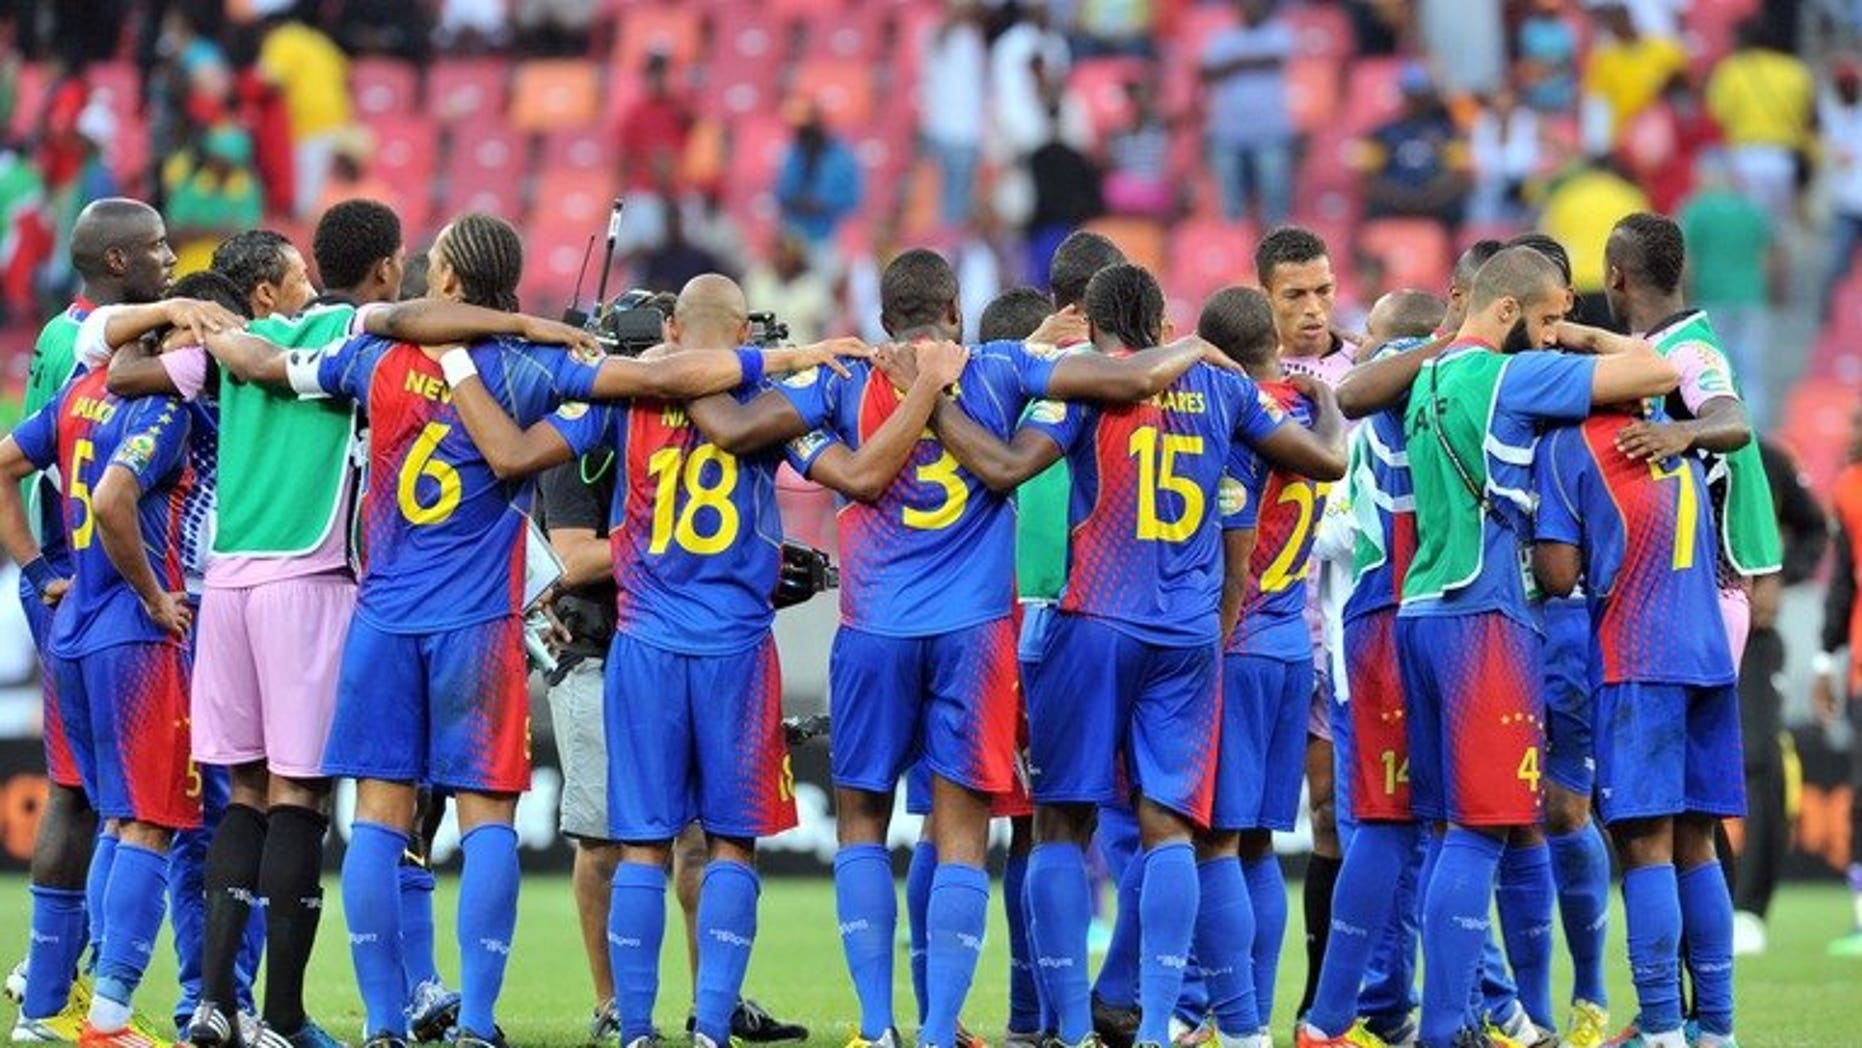 Cape Verde's football players are pictured at the end of the African Cup of Nation quarter final on February 2, 2013 in Port Elizabeth. Cape Verde are back in the race for a 2014 World Cup place after FIFA punished Equatorial Guinea for twice using an ineligible player against them.